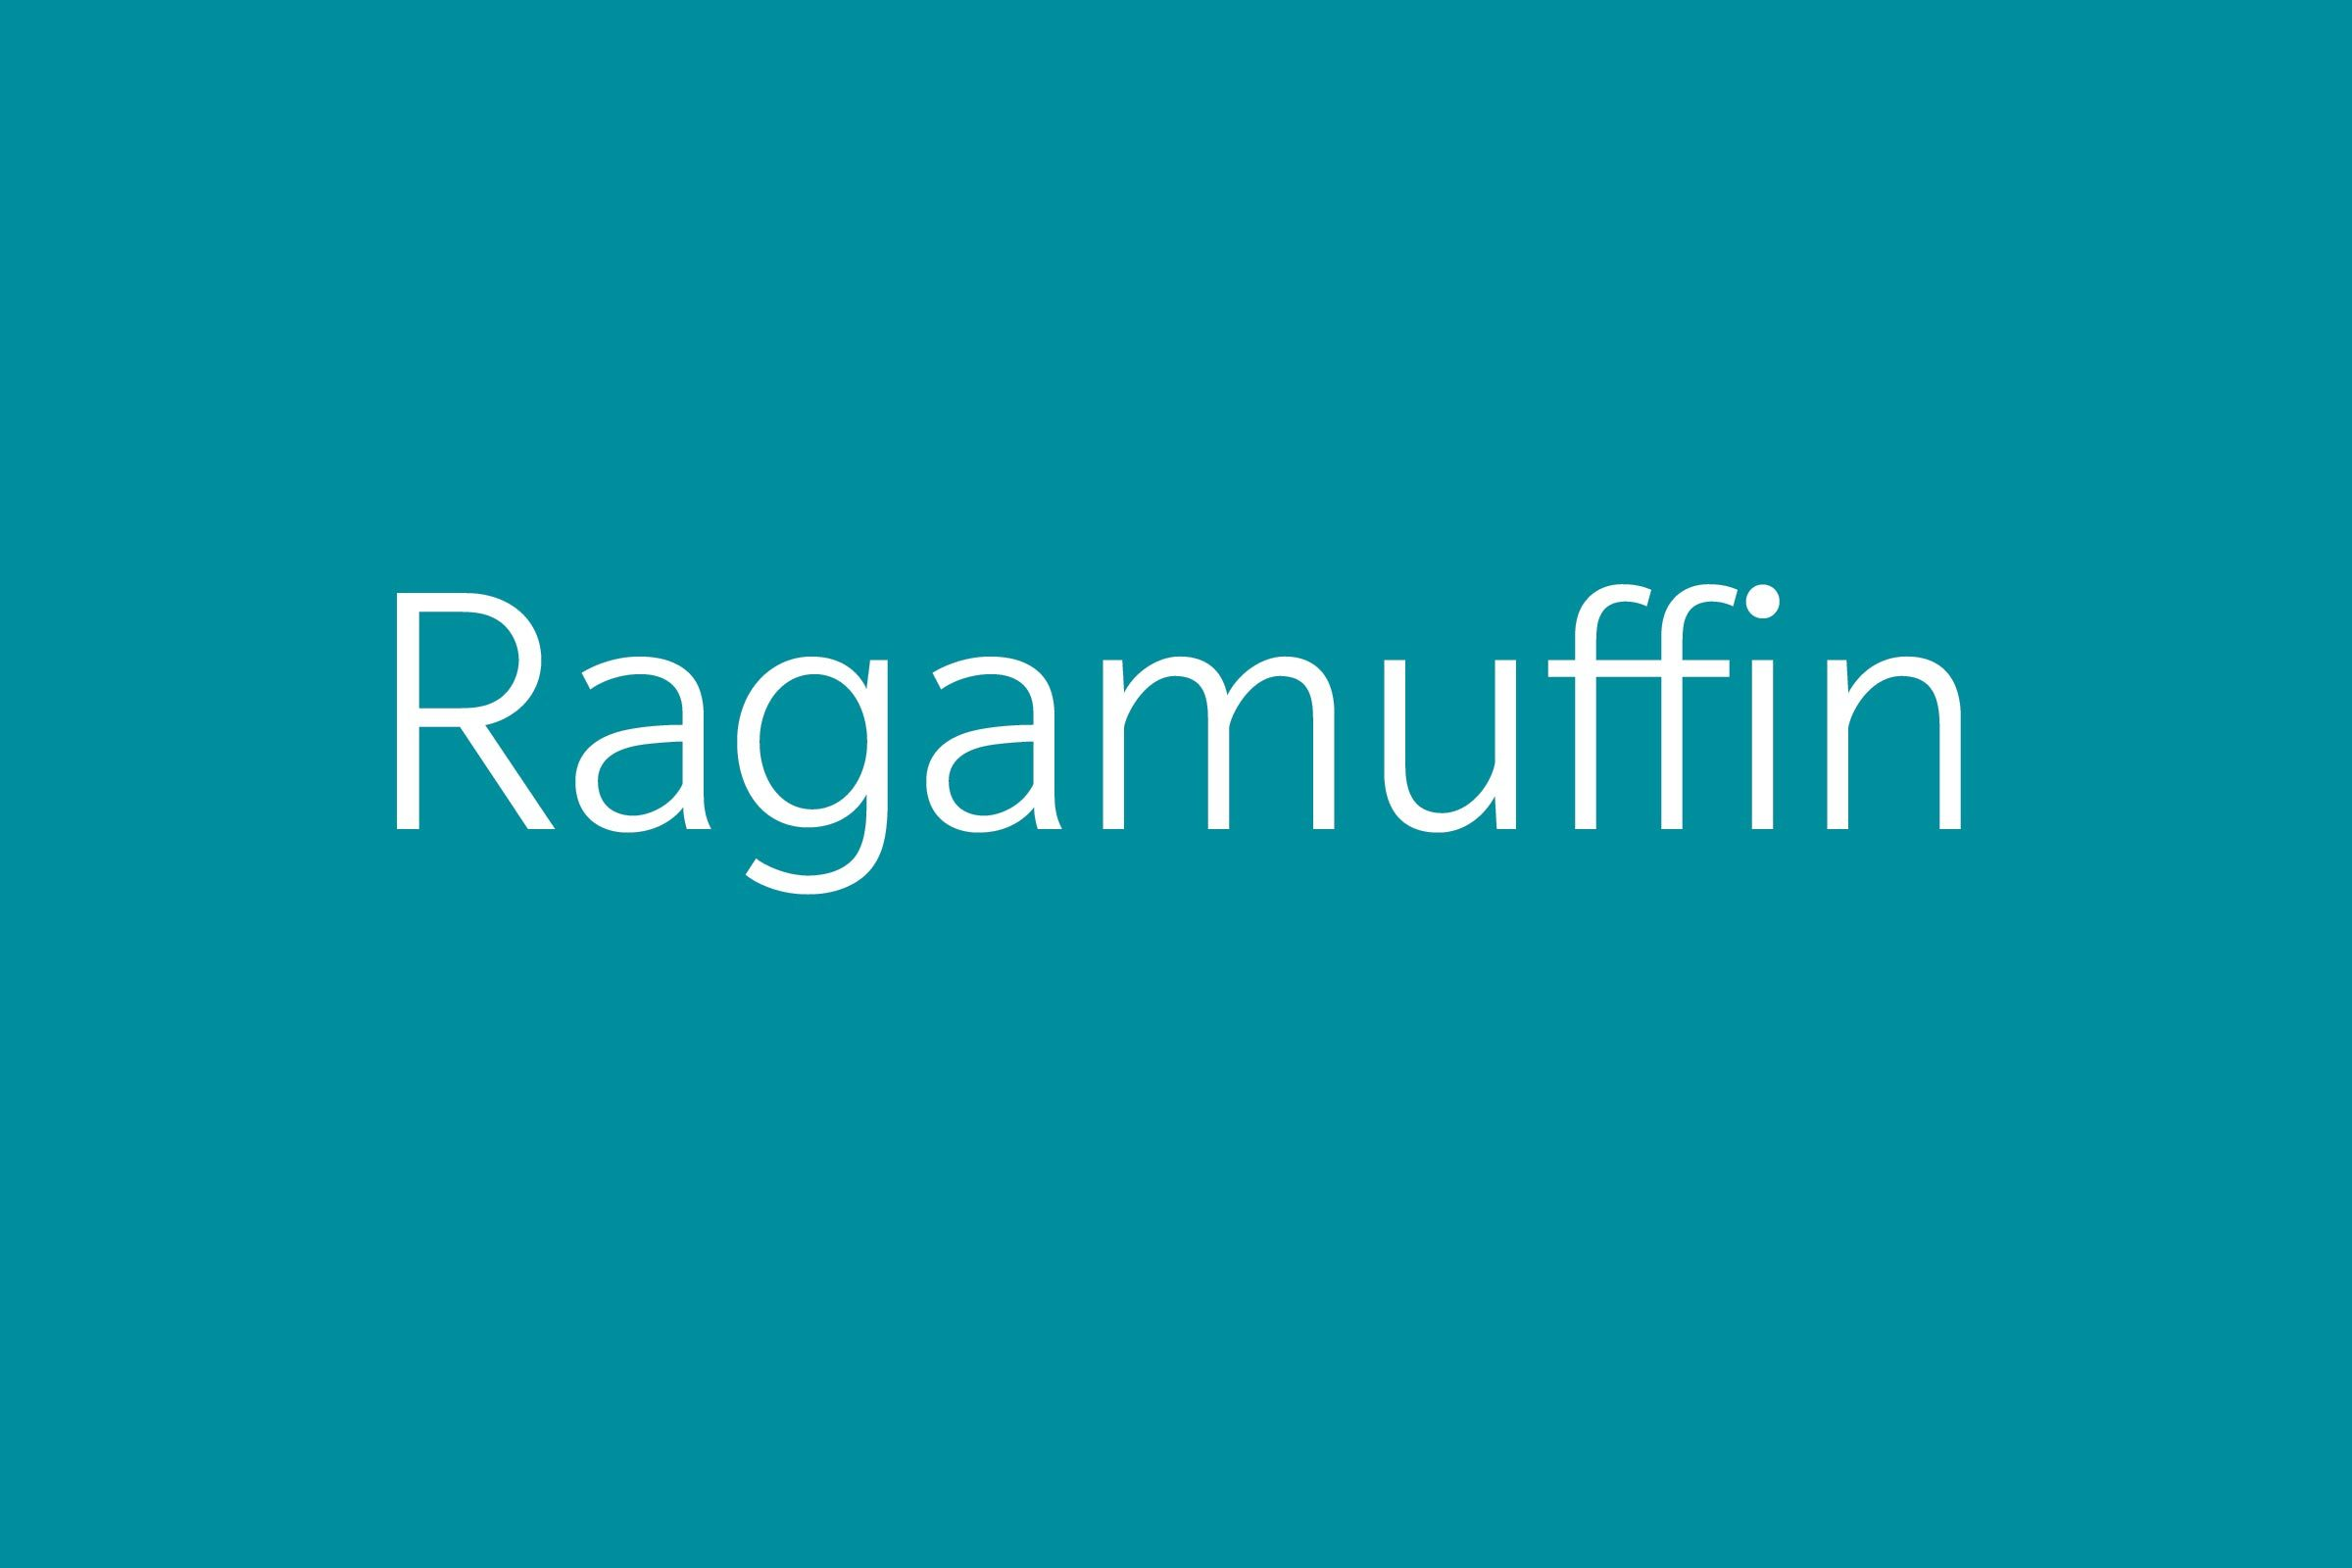 ragamuffin funny word funny words to say